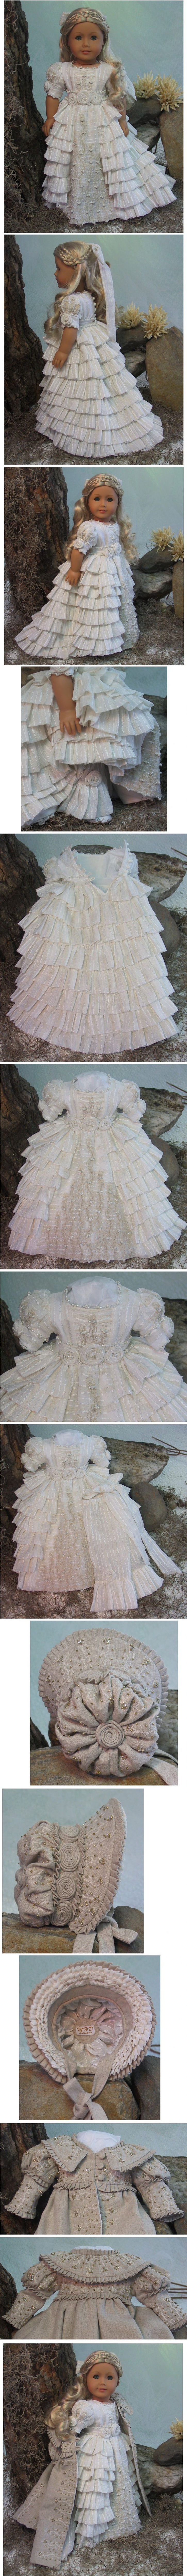 Stunning! I wish this had been my wedding dress. And I want that bonnet in toddler size for Alice. This is too beautiful to waste on a doll.